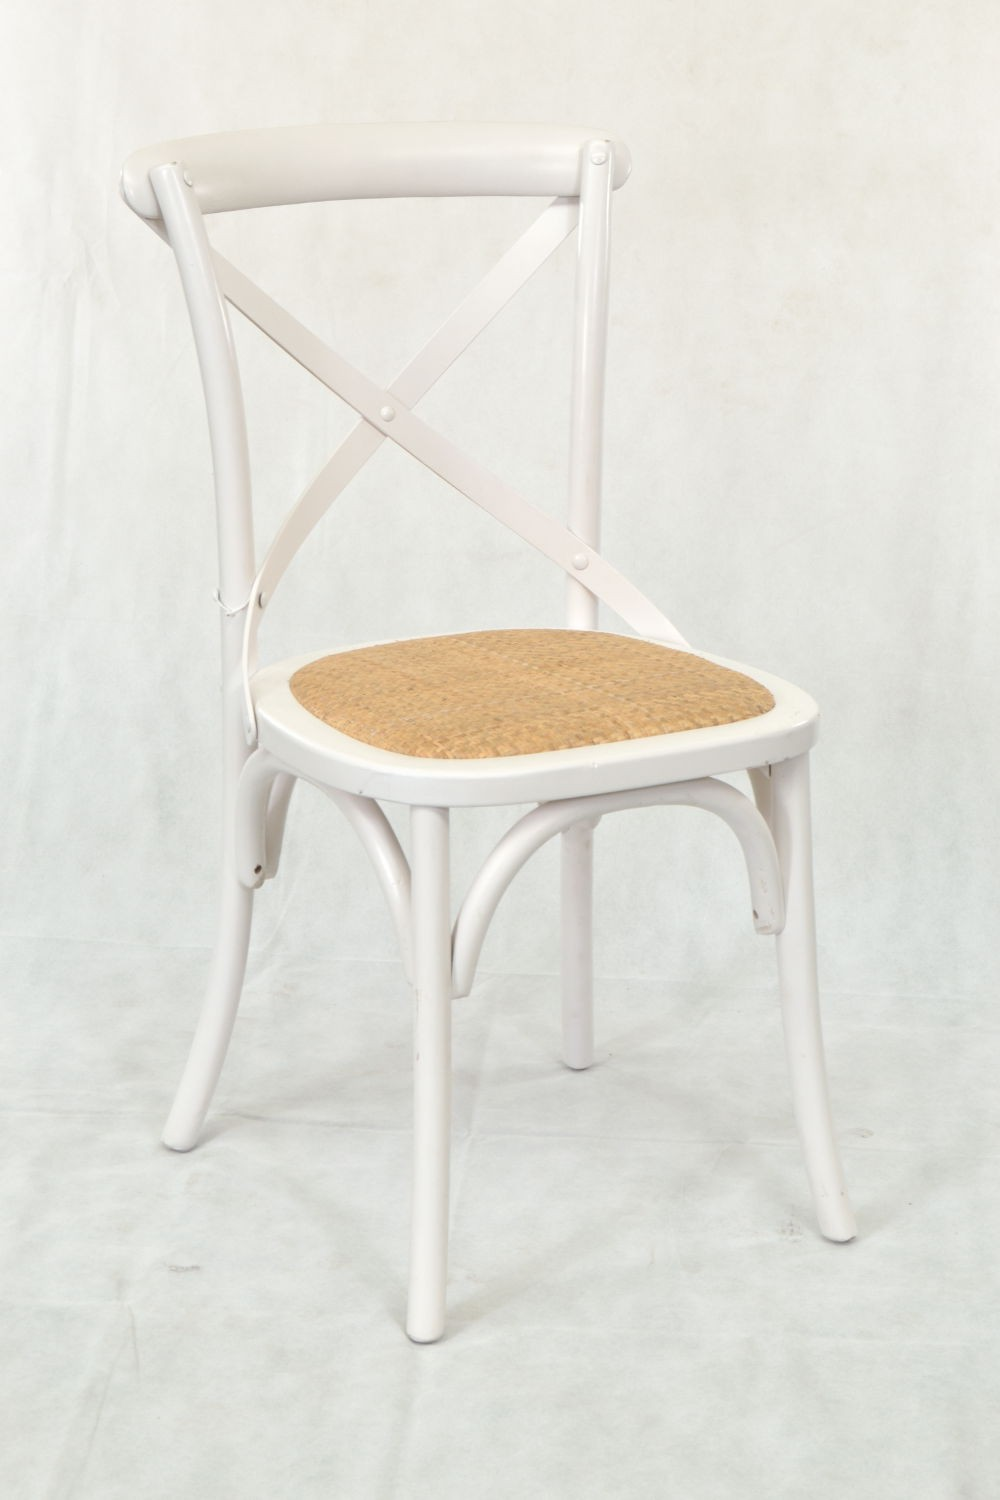 White Bistro Chairs Buy A Stylish White Bentwood Dining Or Bistro Chair